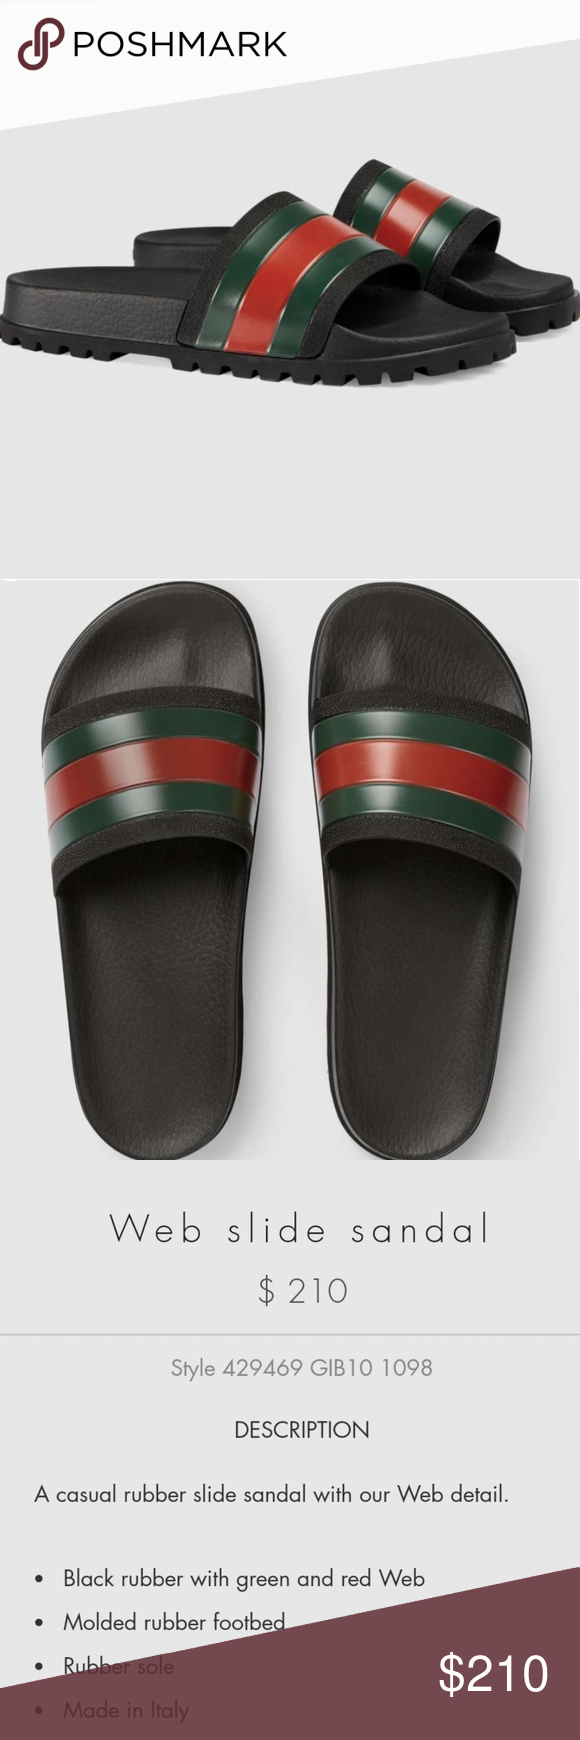 3f1f1683f Gucci slides Web slide sandal NEVER WORN. Received as a gift but doesn t